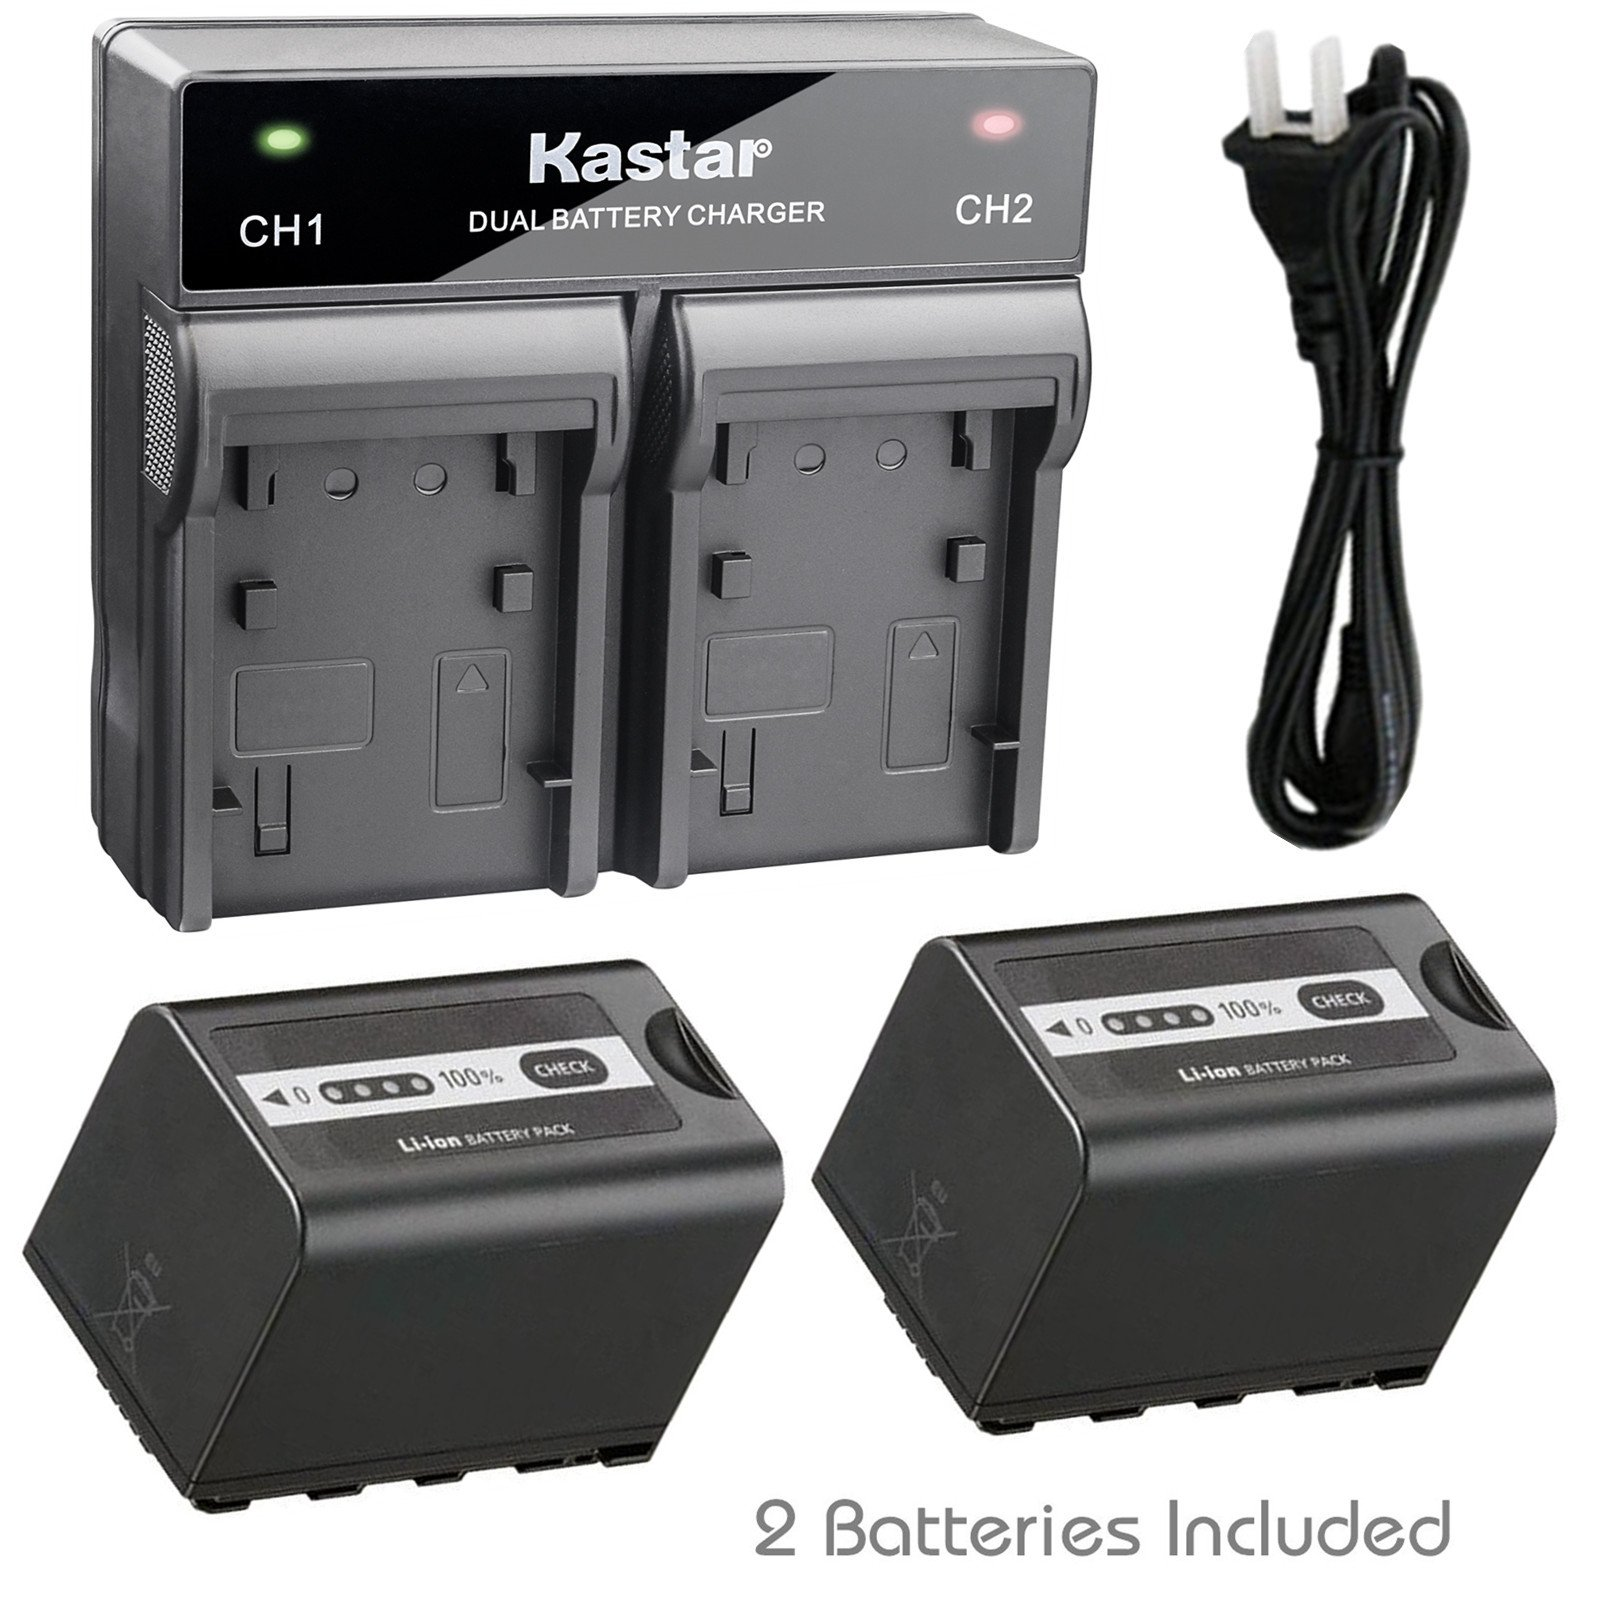 Kastar 2X Battery + Fast Dual Charger for Panasonic VW-VBD58 VW-VBD29 and AJ-PX270 AJ-PX270PJ AJ-PX298 (PX298MC) AJ-UX180 AJ-UX90 HC-MDH2 (MDH2GK, MDH2M) HC-X1000 HC-X1 HDC-Z10000 (Z10000GK, Z10000P) by Kastar